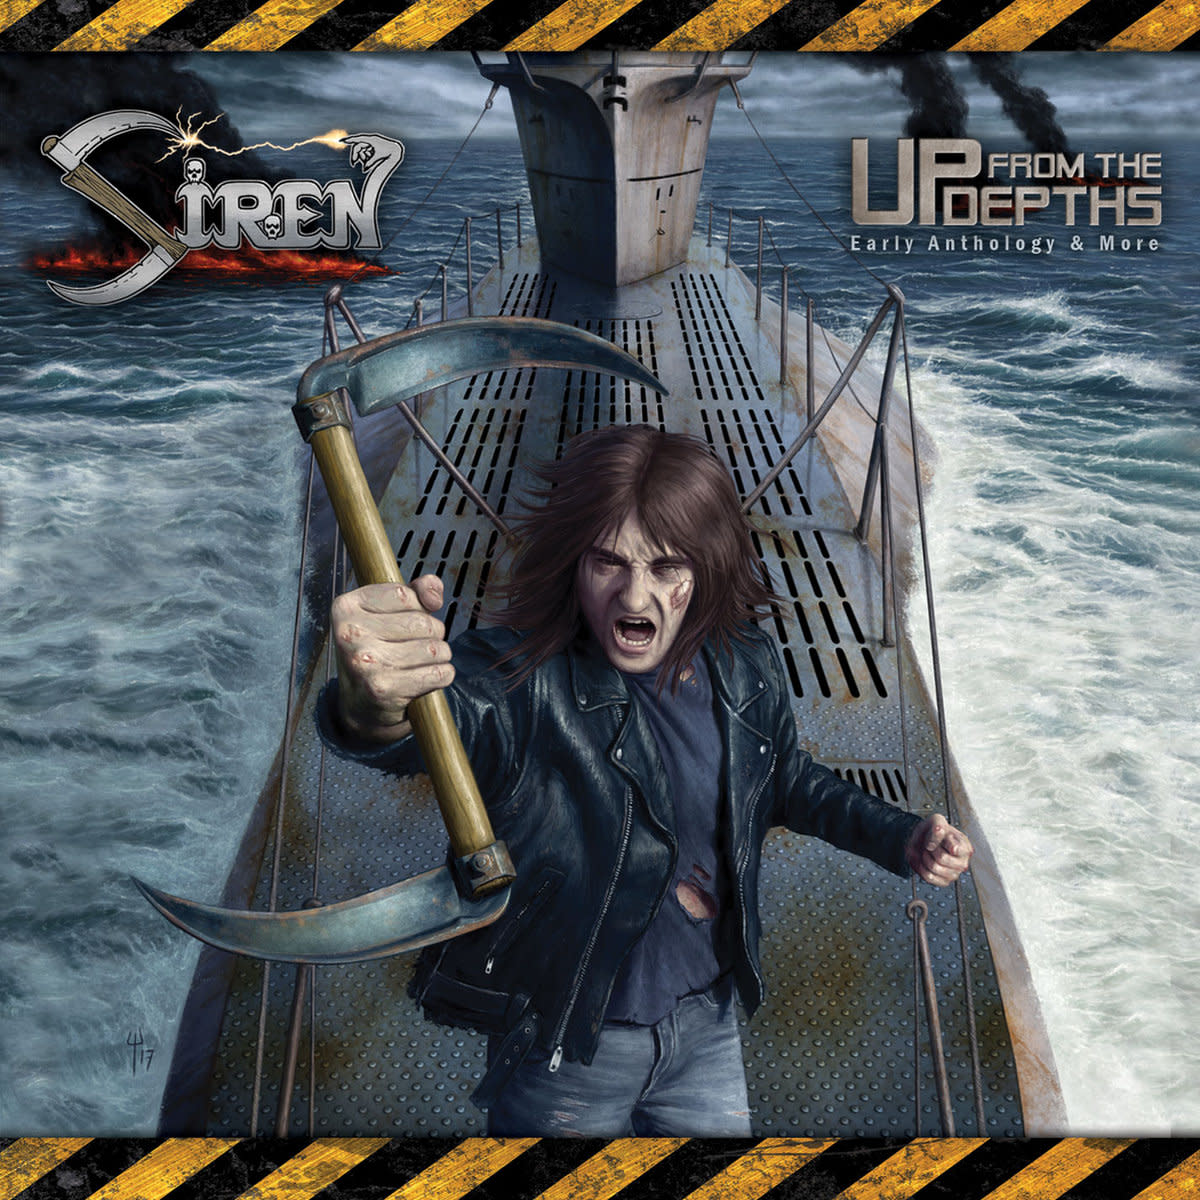 siren-up-from-the-ashes-early-anthology-and-more-album-review